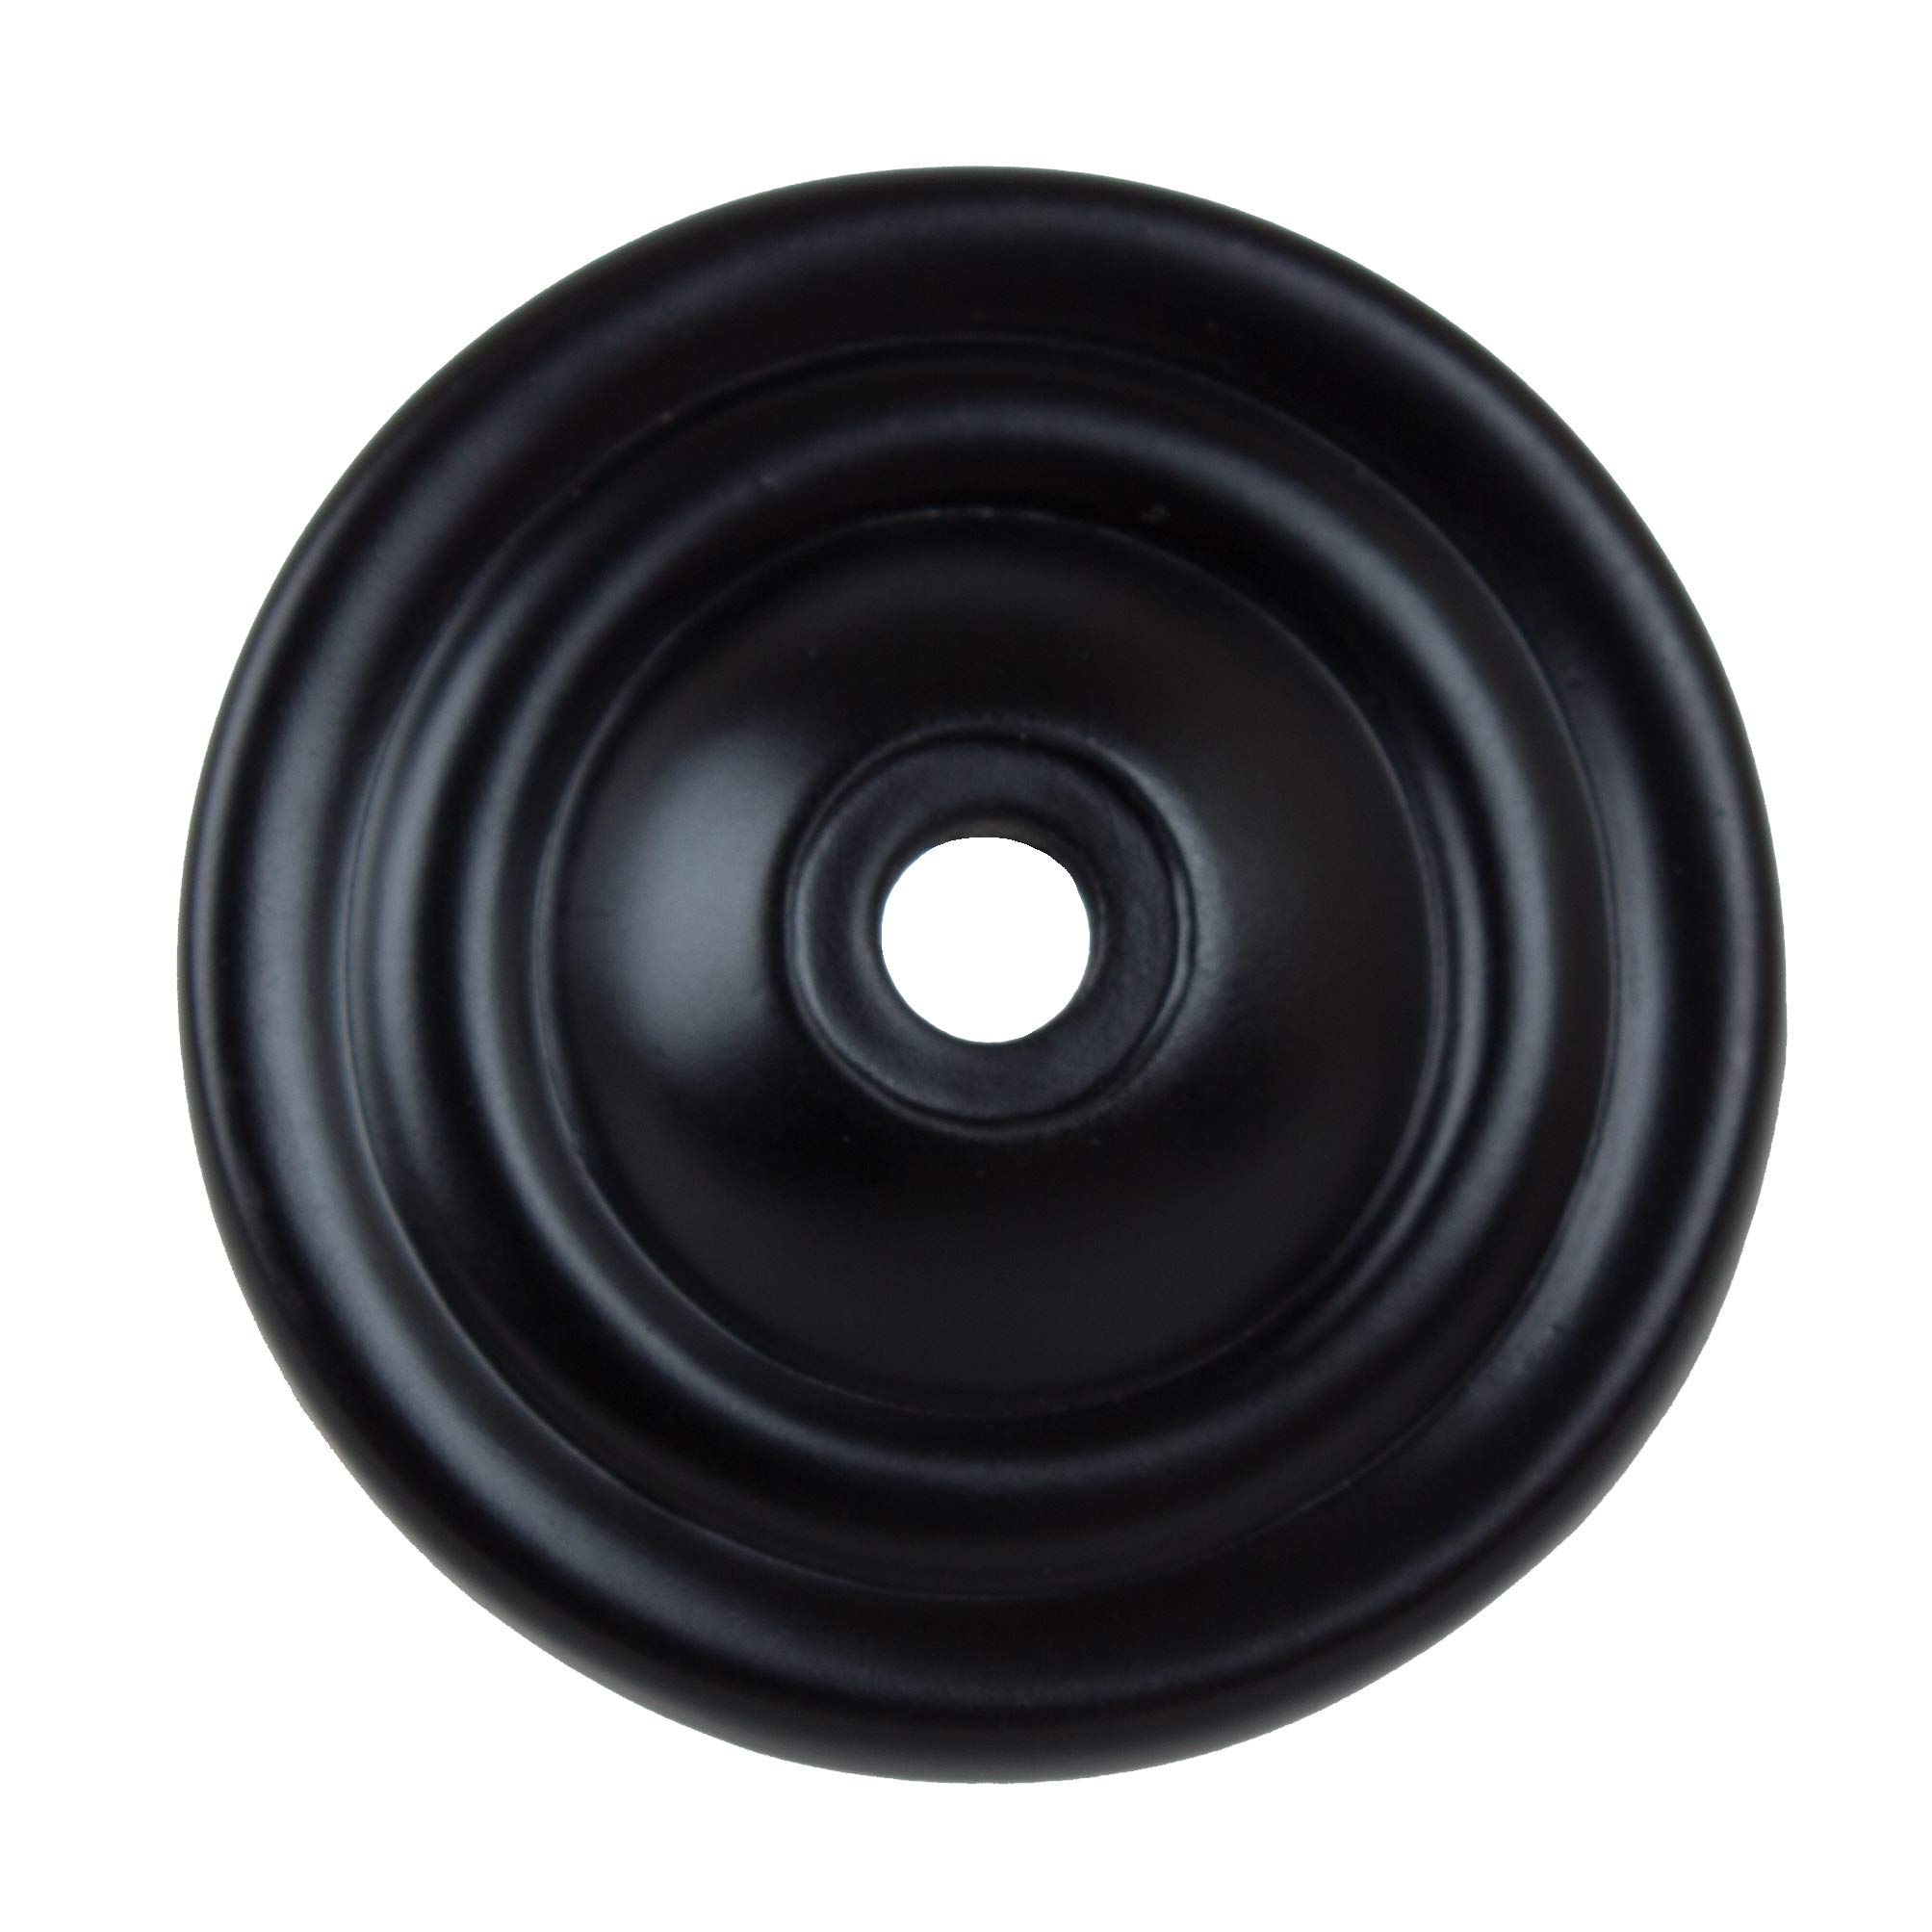 GlideRite Hardware 5061-MB-100 Thin Rounded Ring Cabinet Back Plate, 100 Pack, 1.5'', Matte Black by GlideRite Hardware (Image #3)